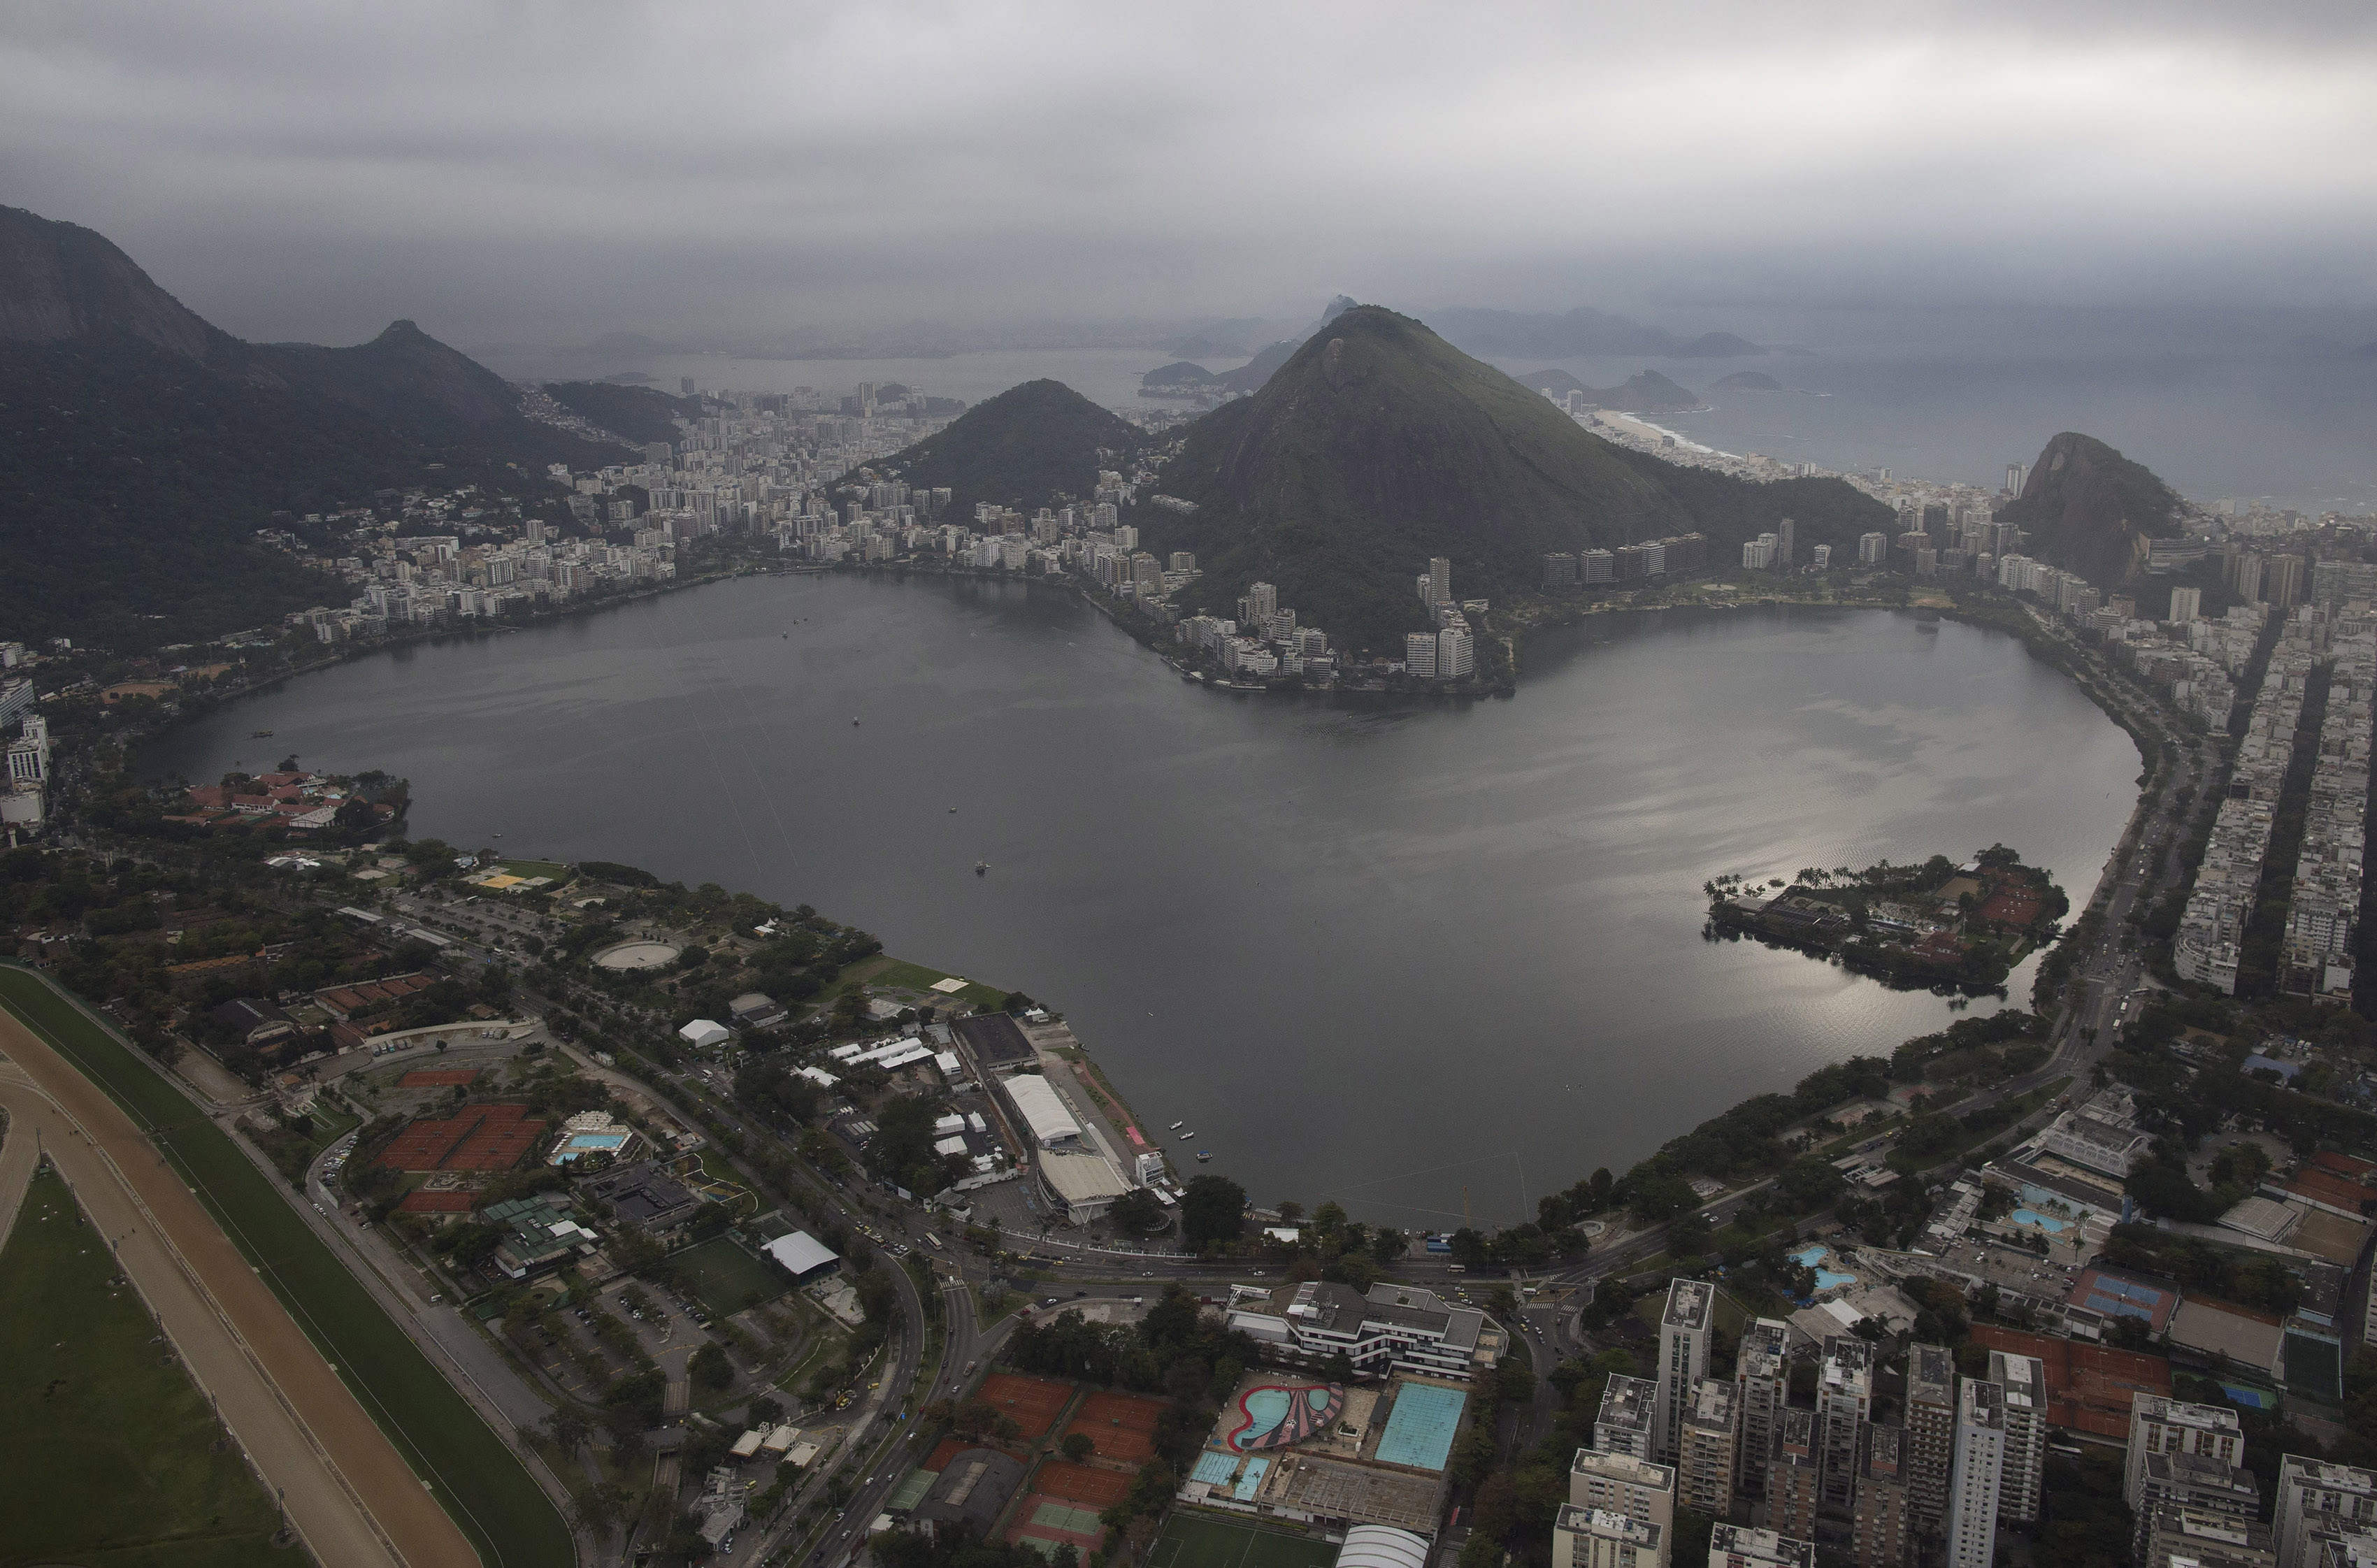 FILE - This July 27, 2015, file photo shows the Rodrigo de Freitas Lake in Rio de Janeiro, Brazil. An Associated Press analysis of water quality found dangerously high levels of viruses and bacteria from human sewage in Olympic and Paralympic venues. The